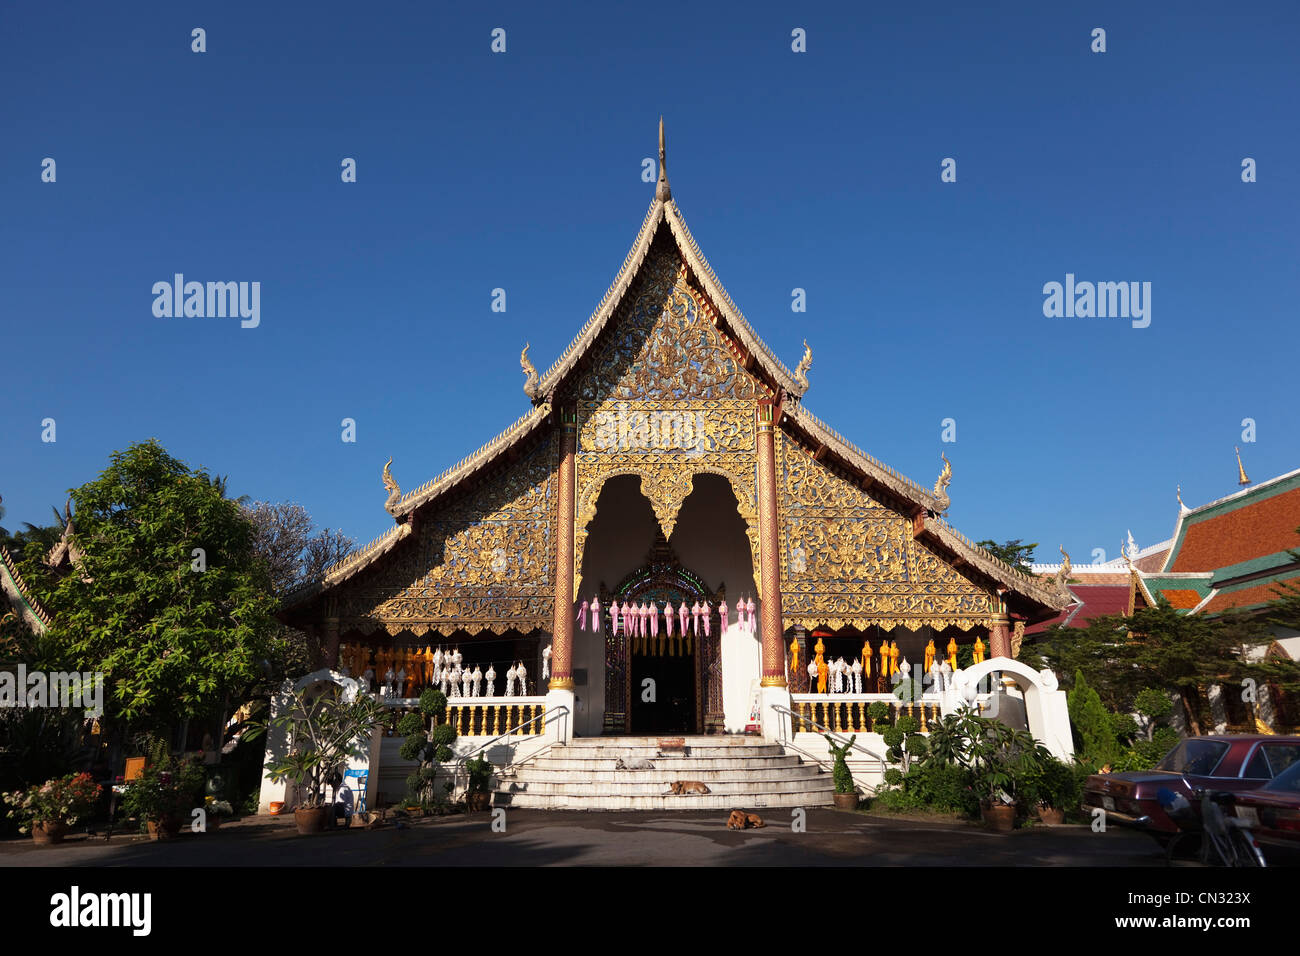 Feral dogs in front of Wat Chiang Mun temple, Chiang Mai, Thailand - Stock Image